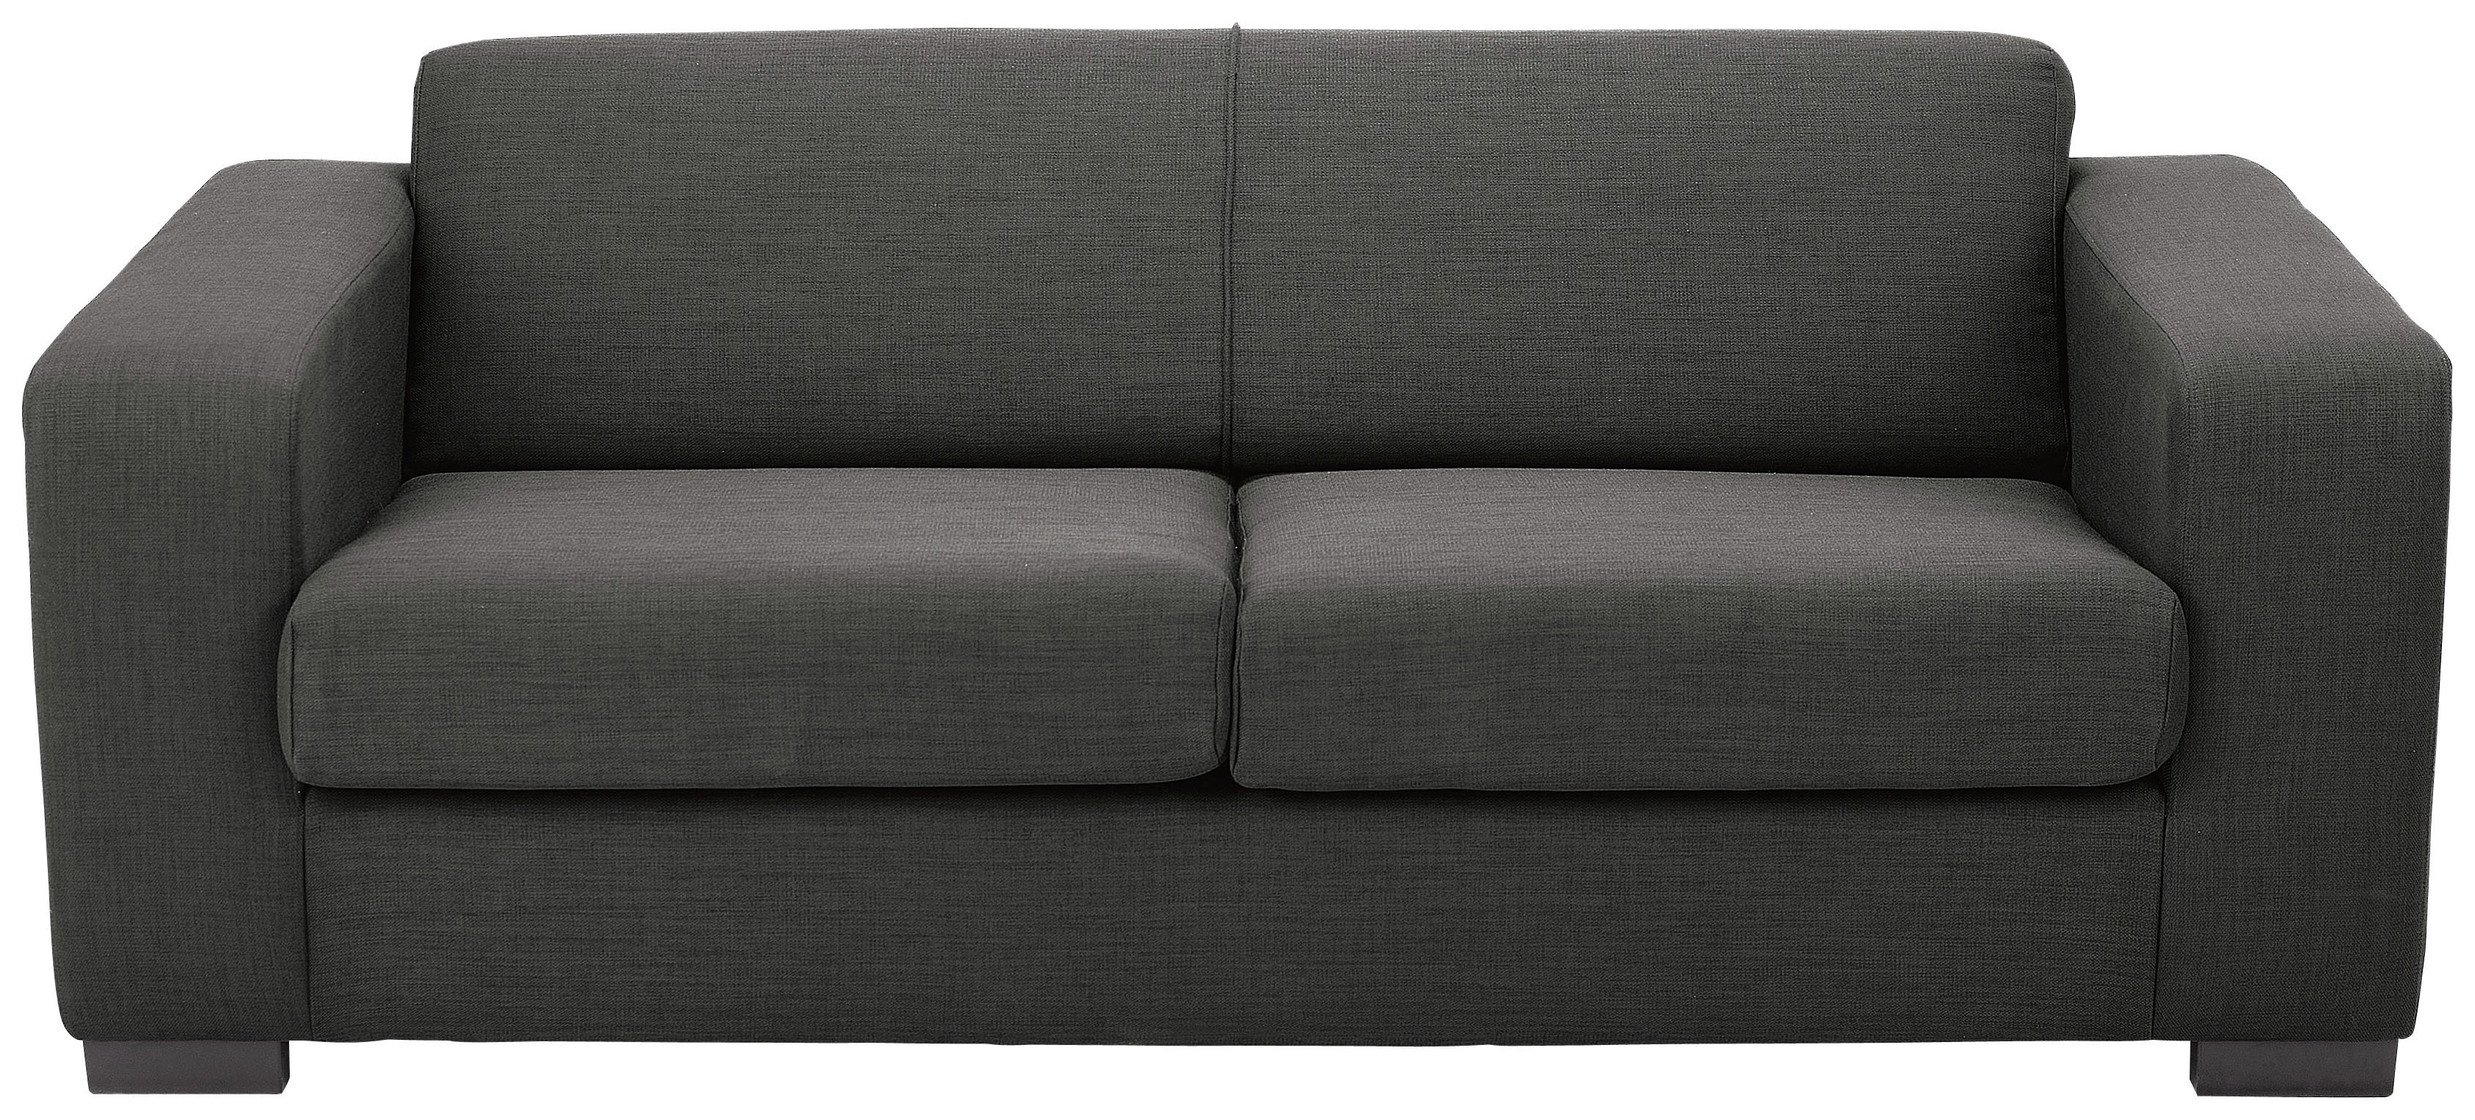 Argos Home New Ava 2 Seater Fabric Sofa Bed - Charcoal